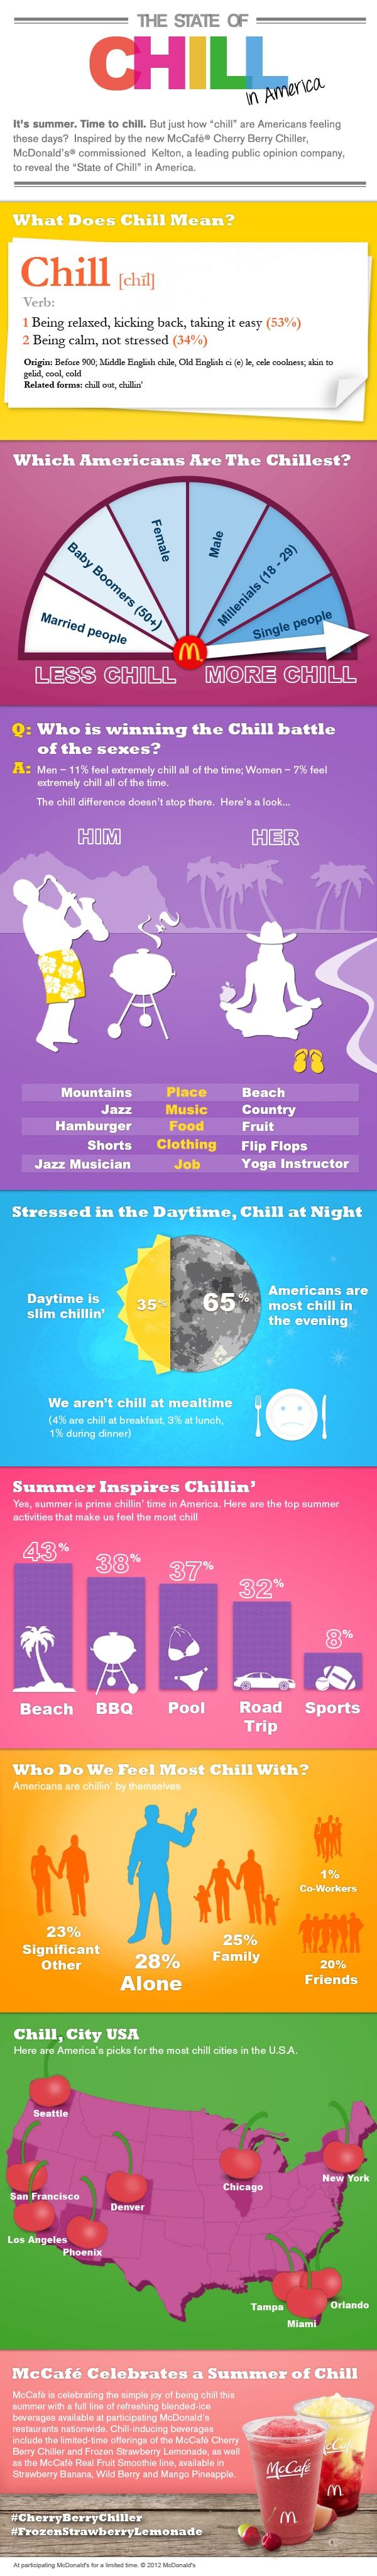 how-we-all-chill-infographic